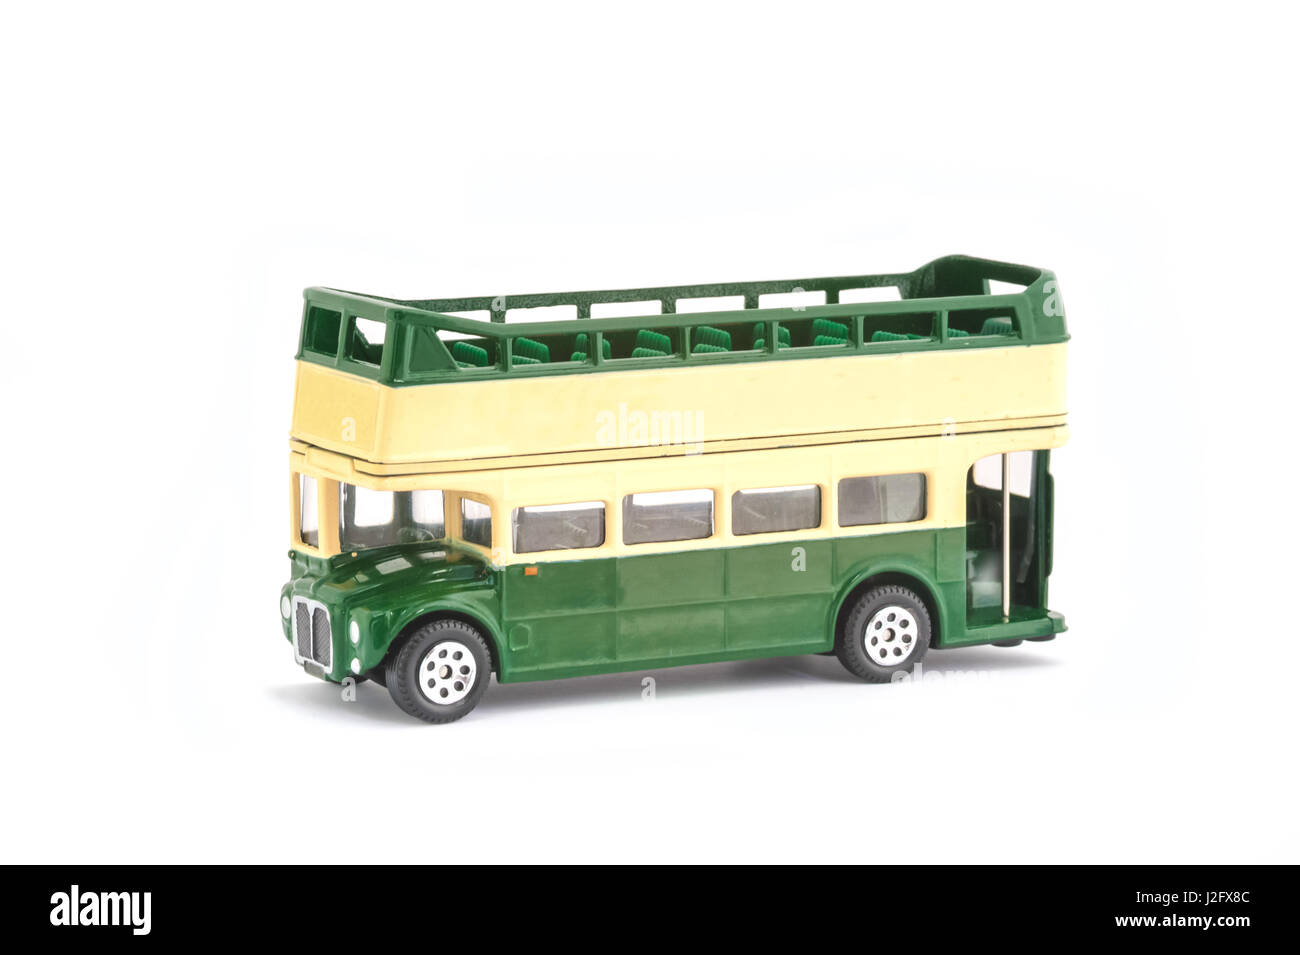 miniature scale model of a vintage open-top tour bus on white - Stock Image